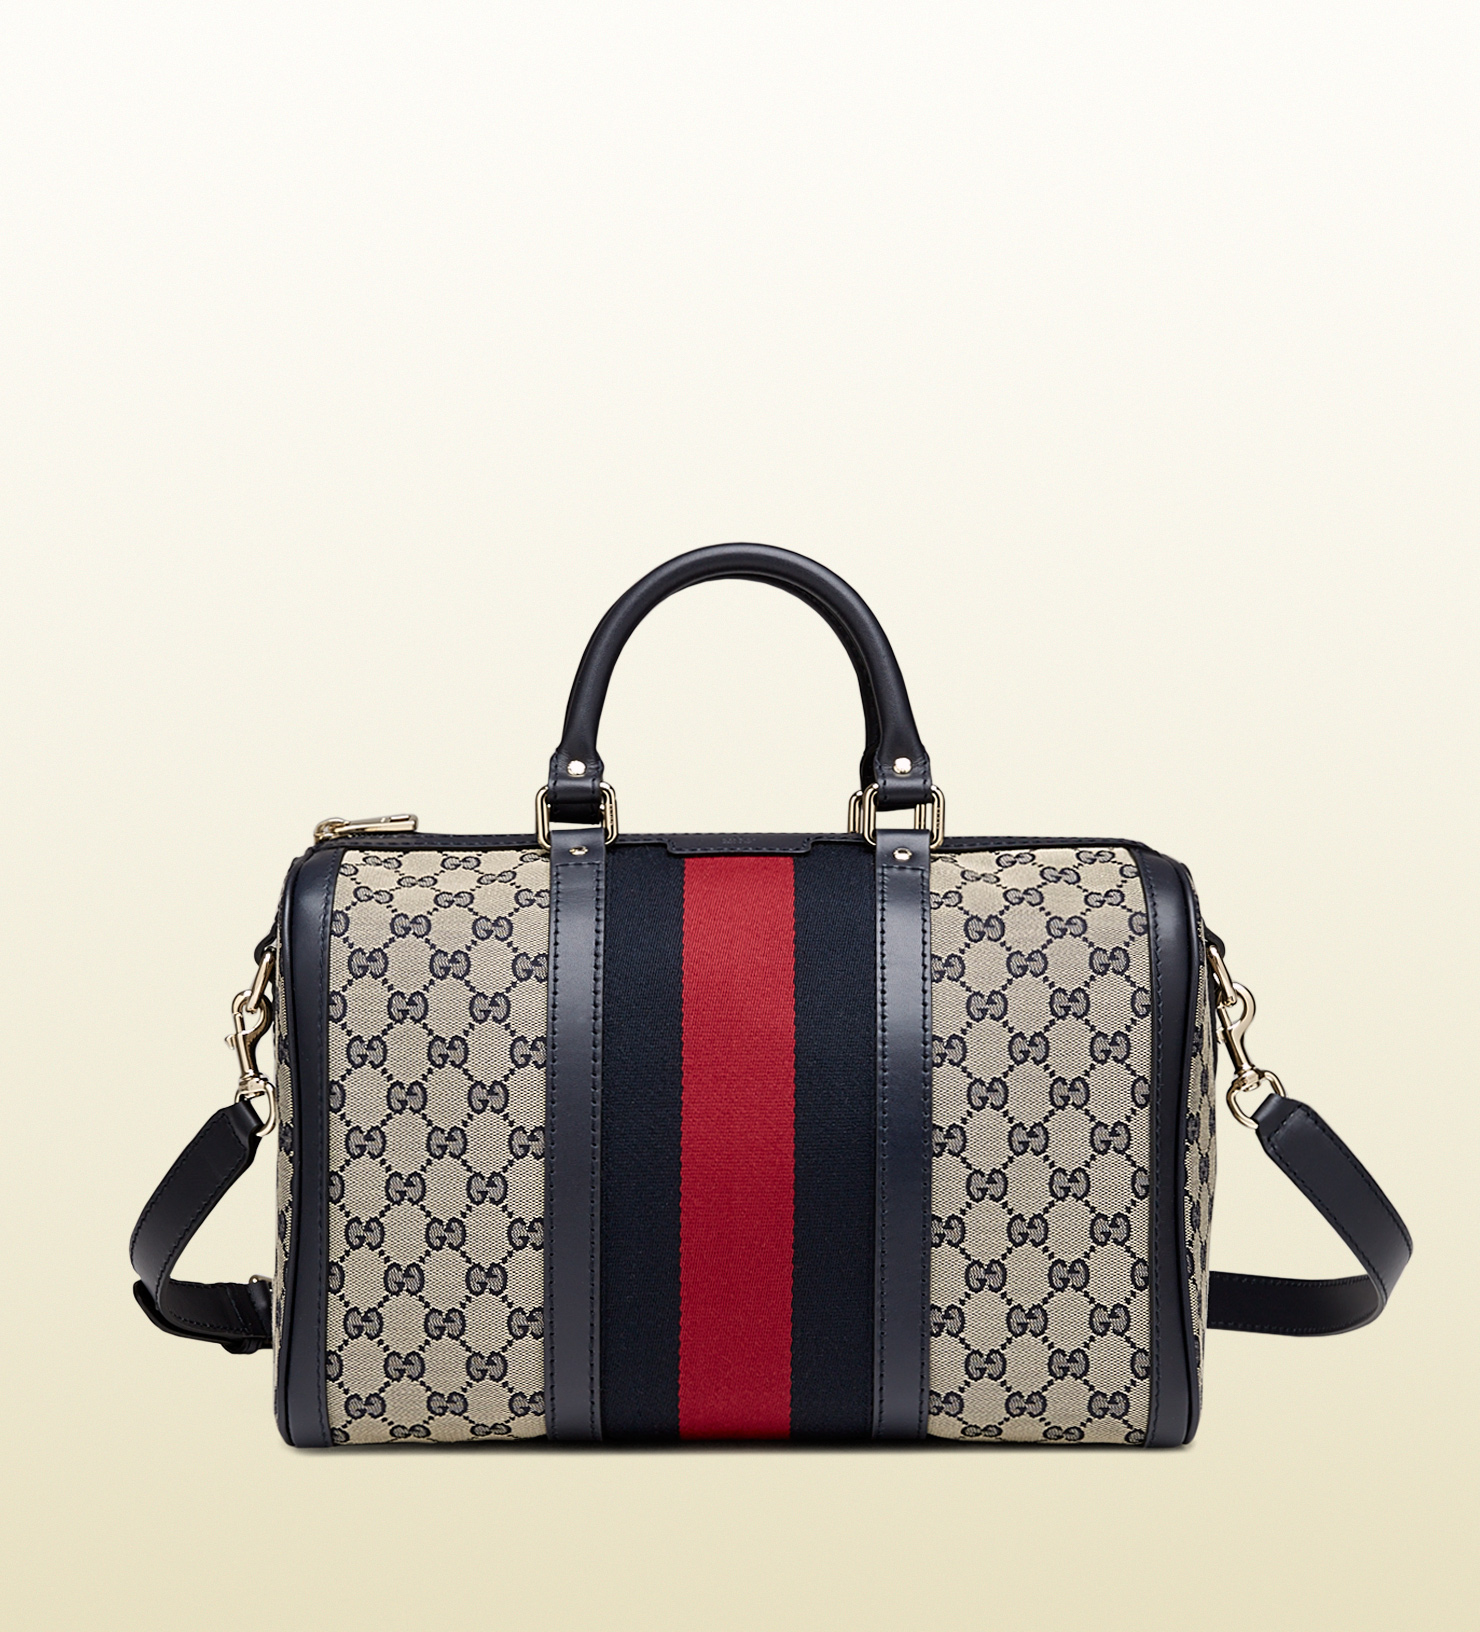 e409e073b49f14 Gucci Vintage Web Boston Bag Replica | Stanford Center for ...